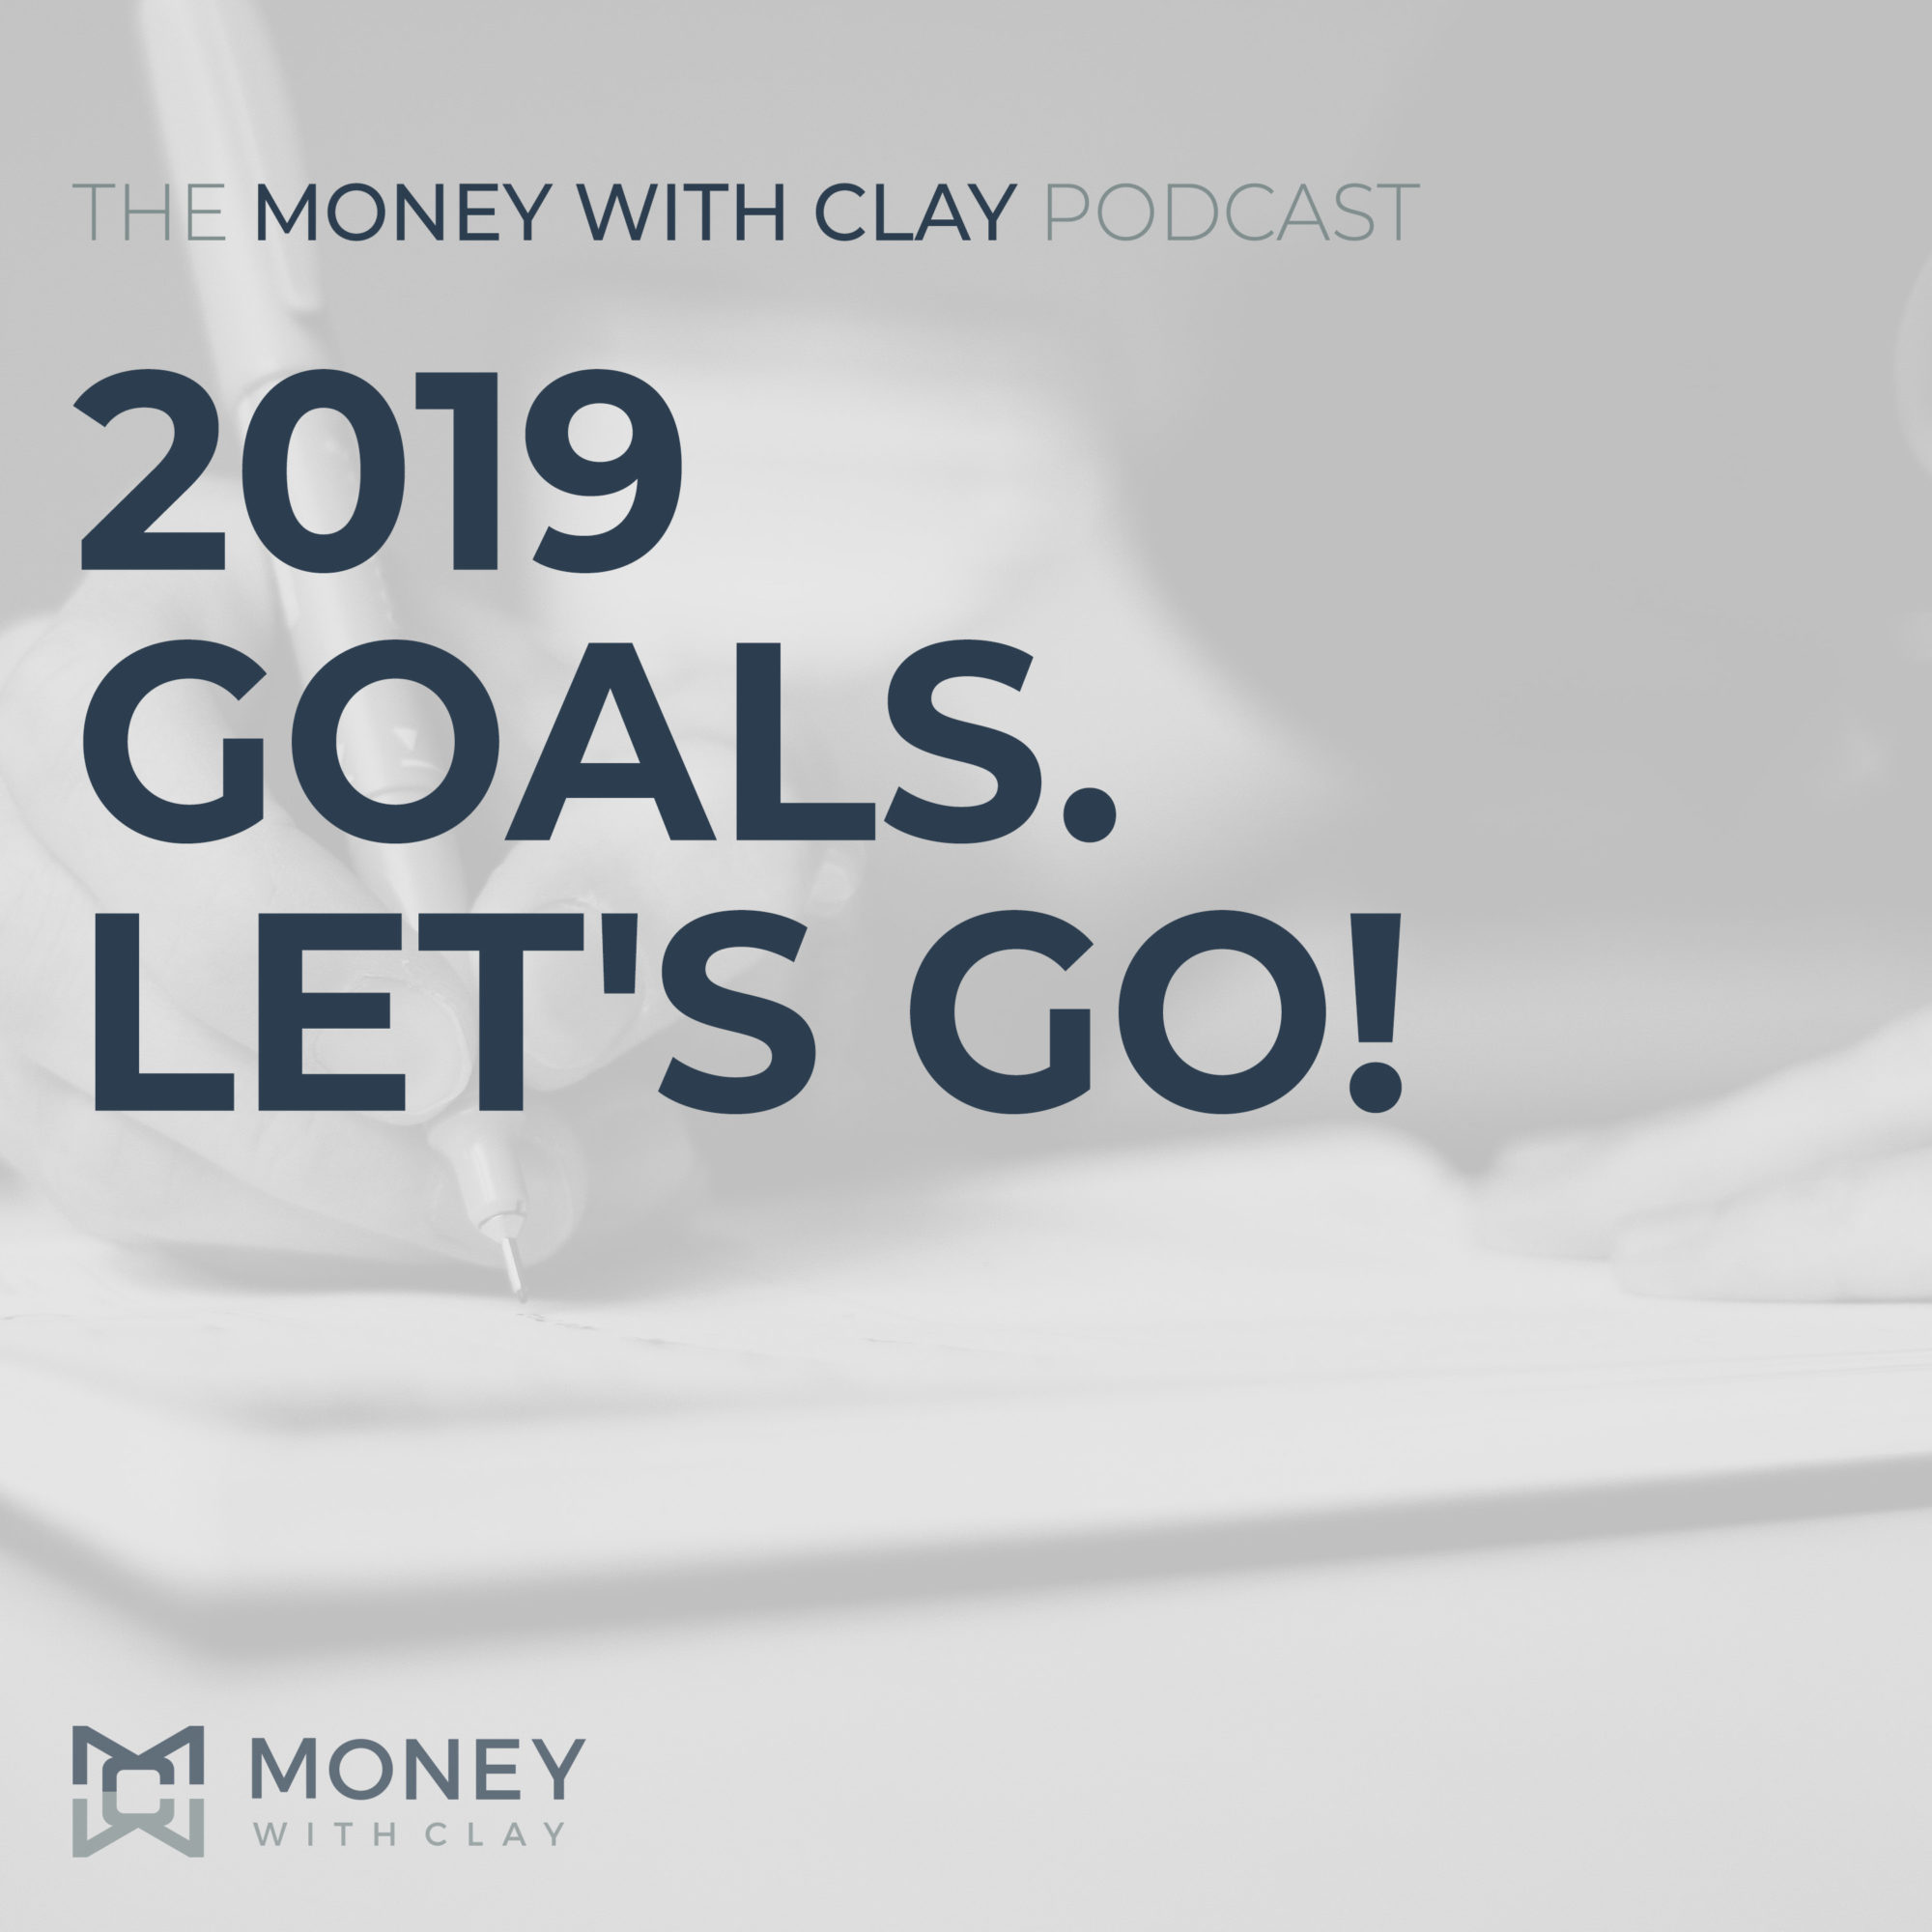 #033 - 2019 Goals. Let's Go!